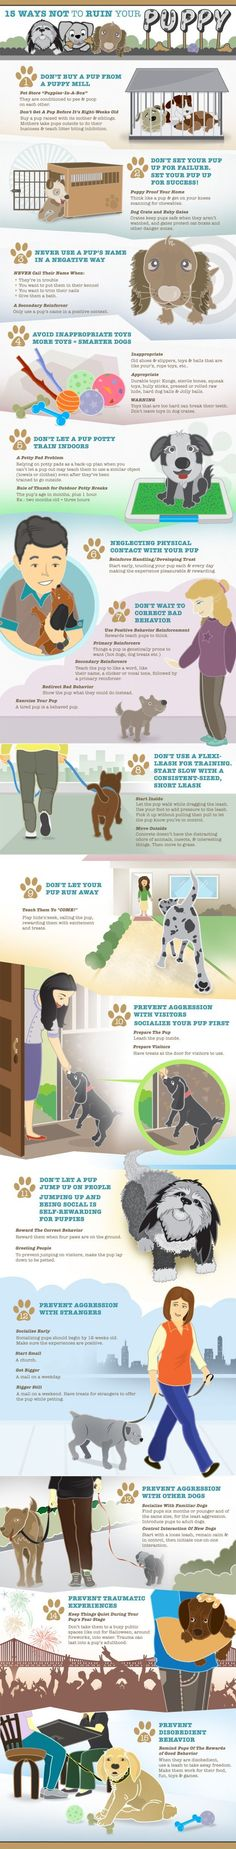 How to handle your puppy. #dogs #pets #puppy